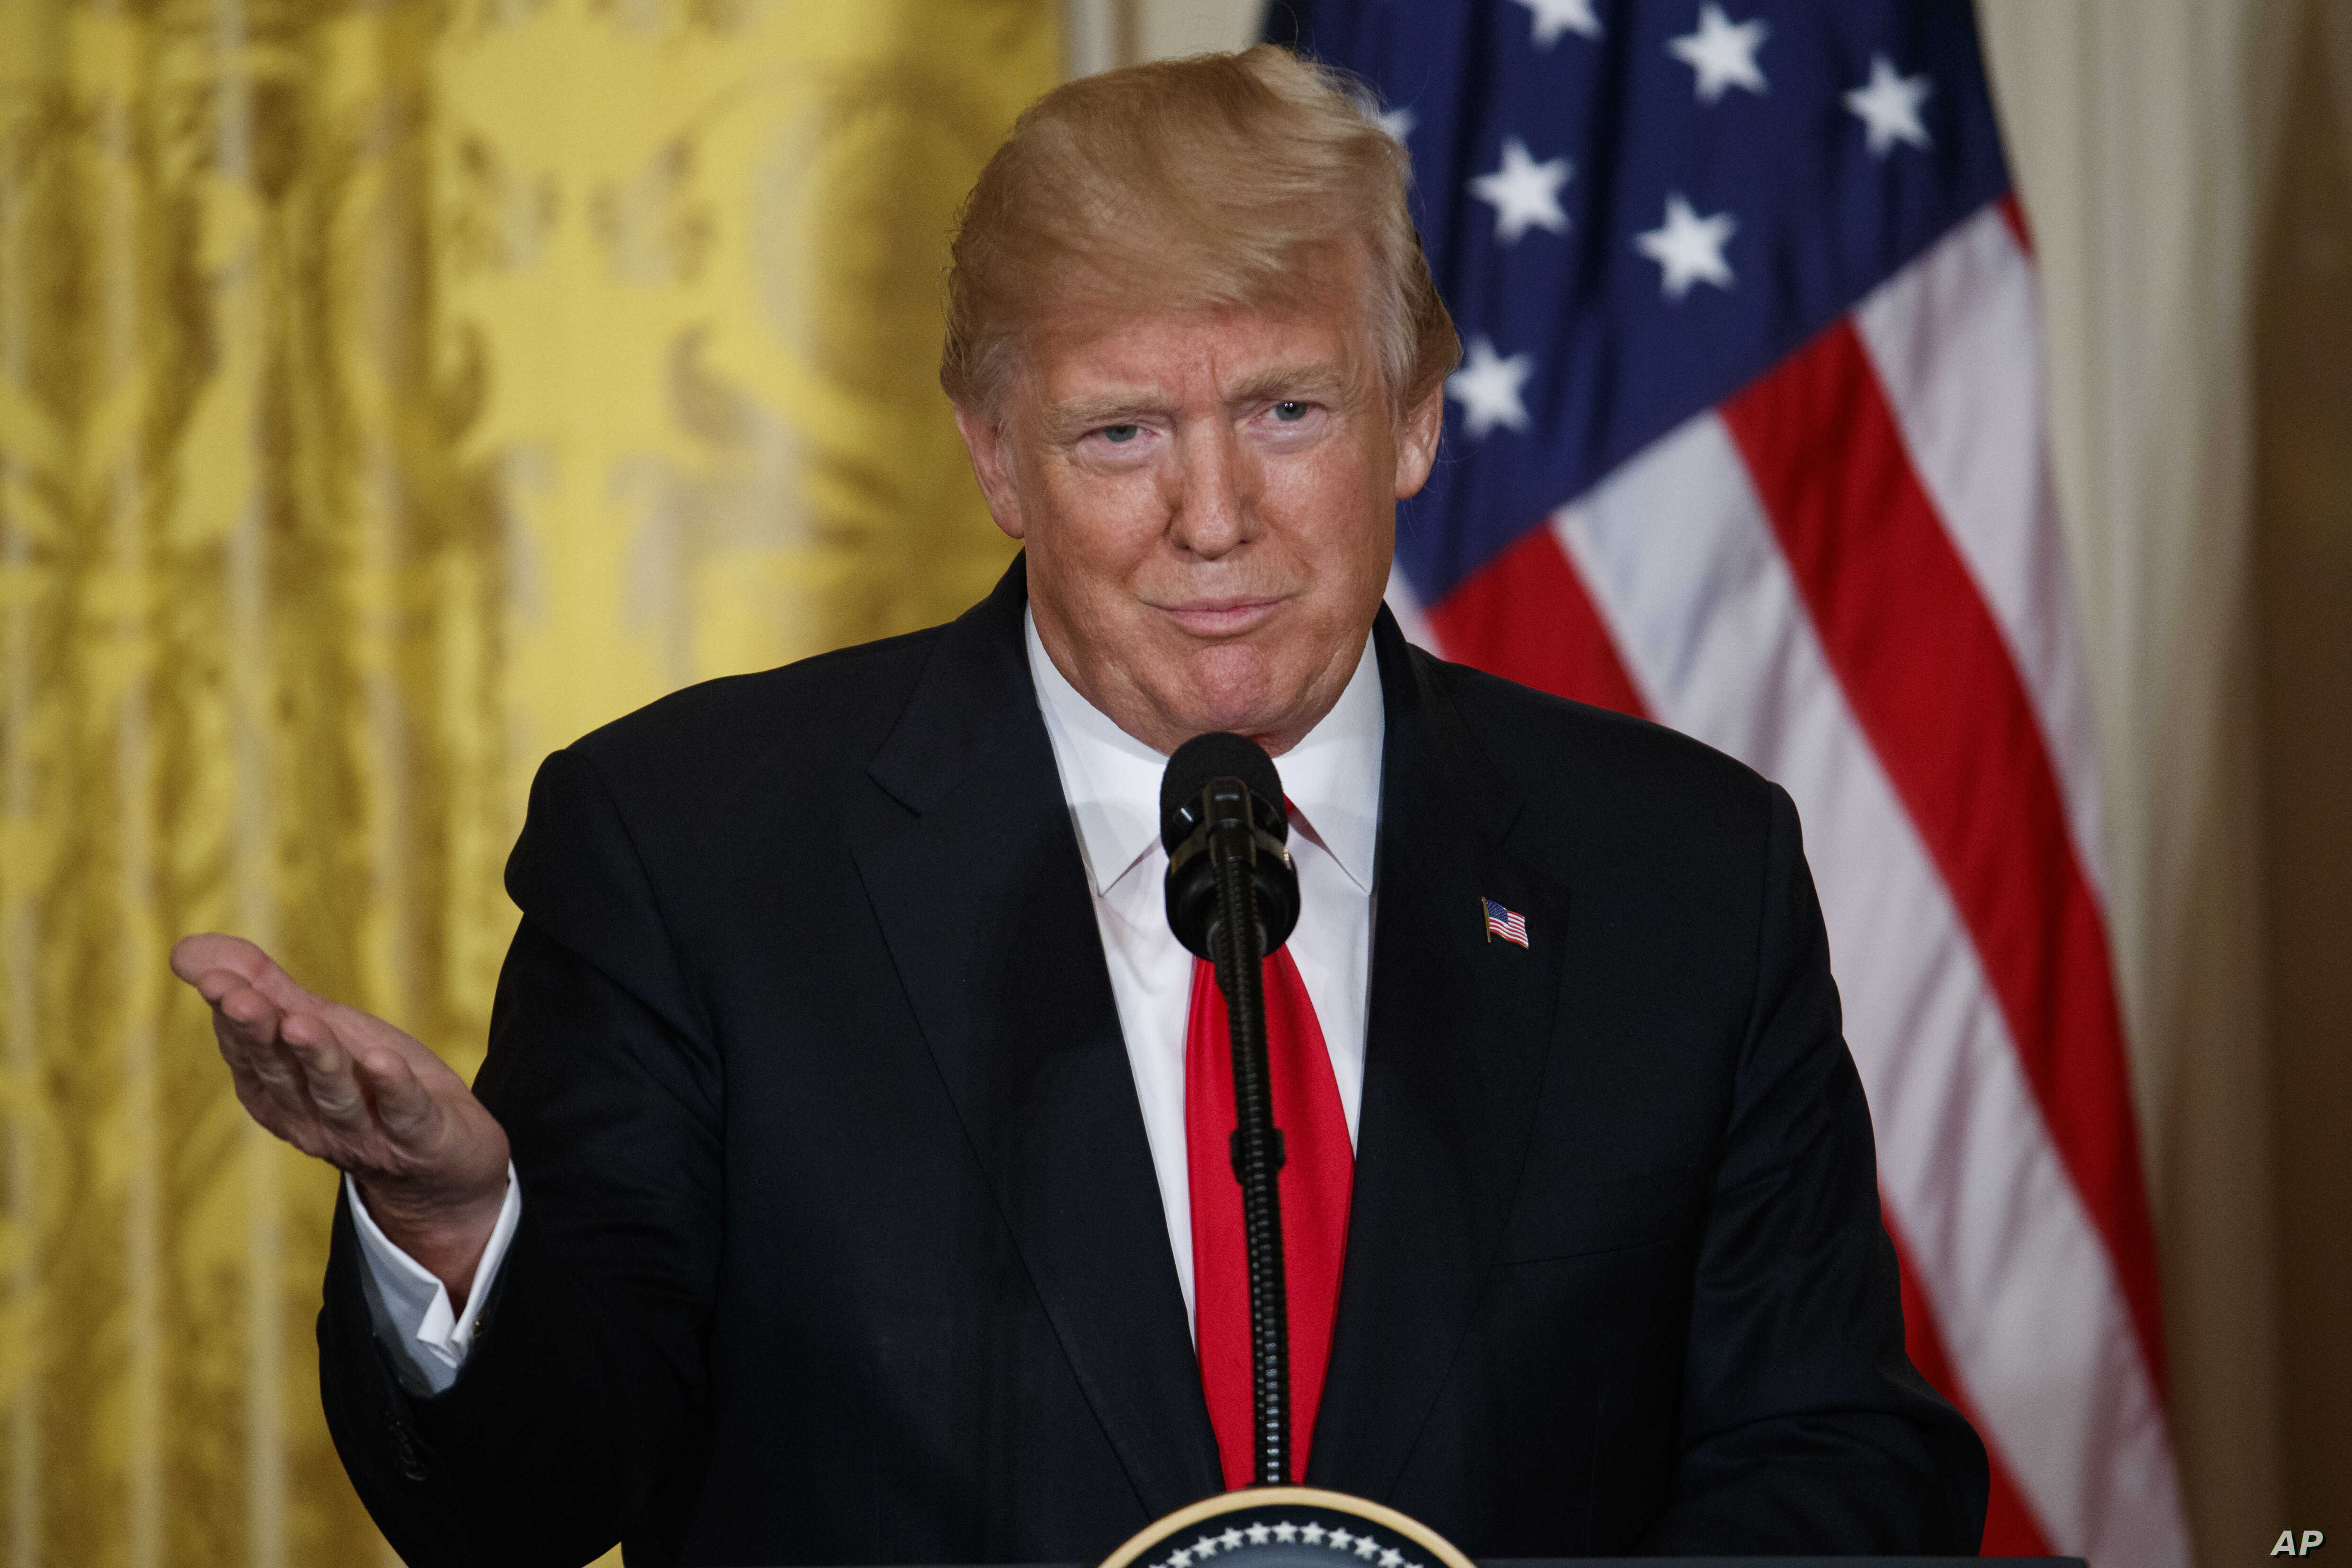 U.S. President Donald Trump speaks during a news conference in the East Room of the White House, Jan. 10, 2018, in Washington.